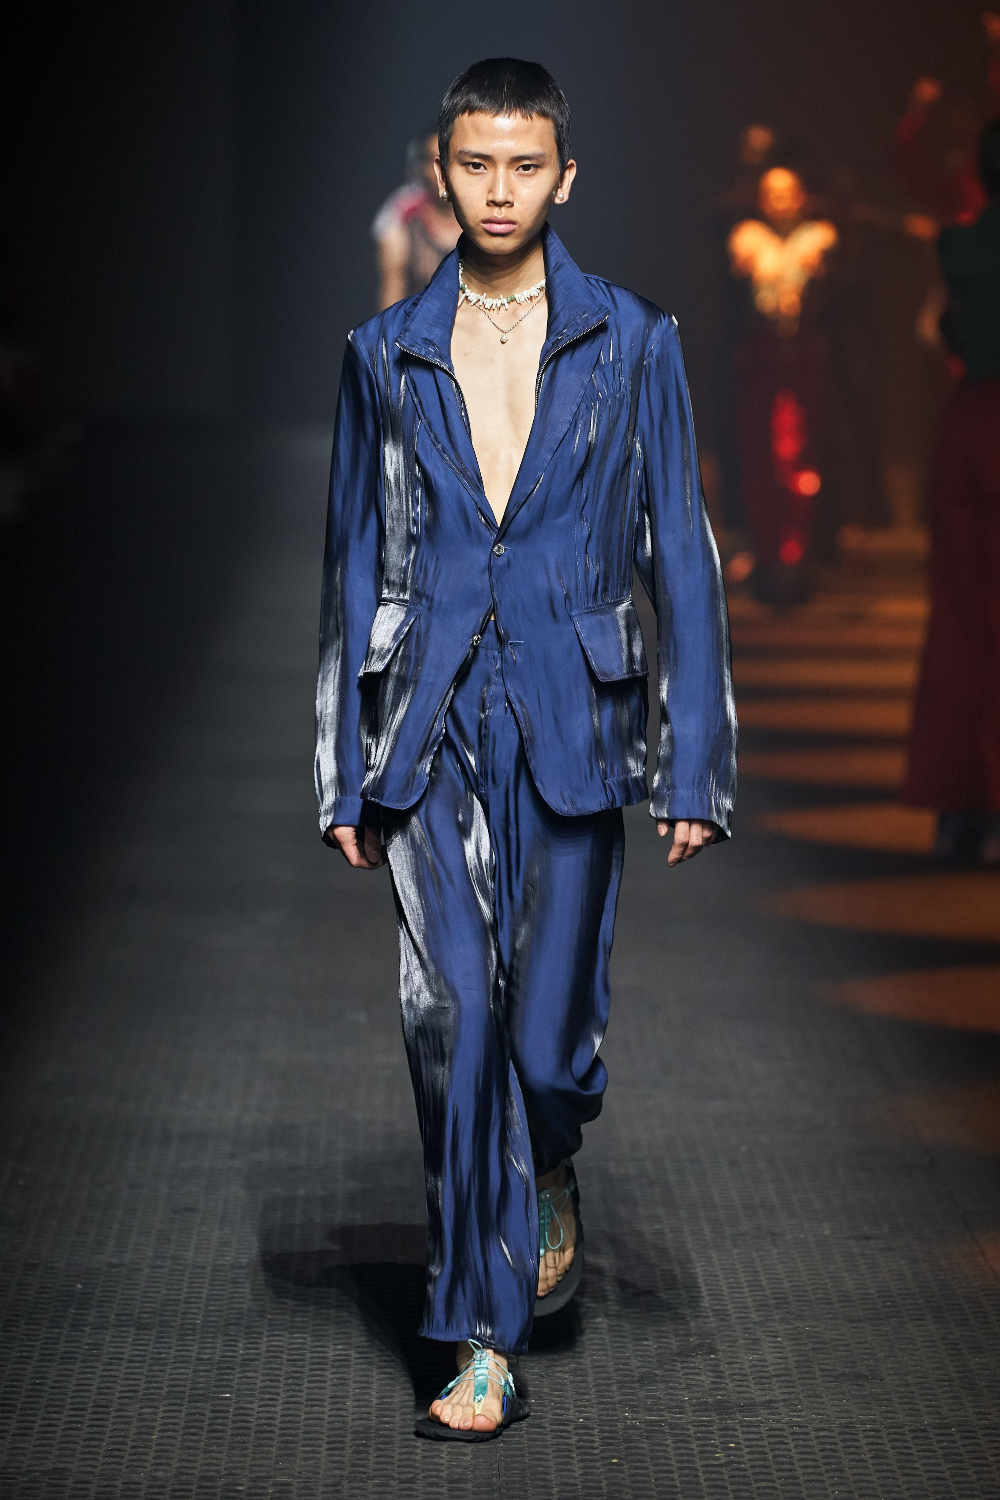 Kenzo Spring 2020 Menswear Fashion Show (With images